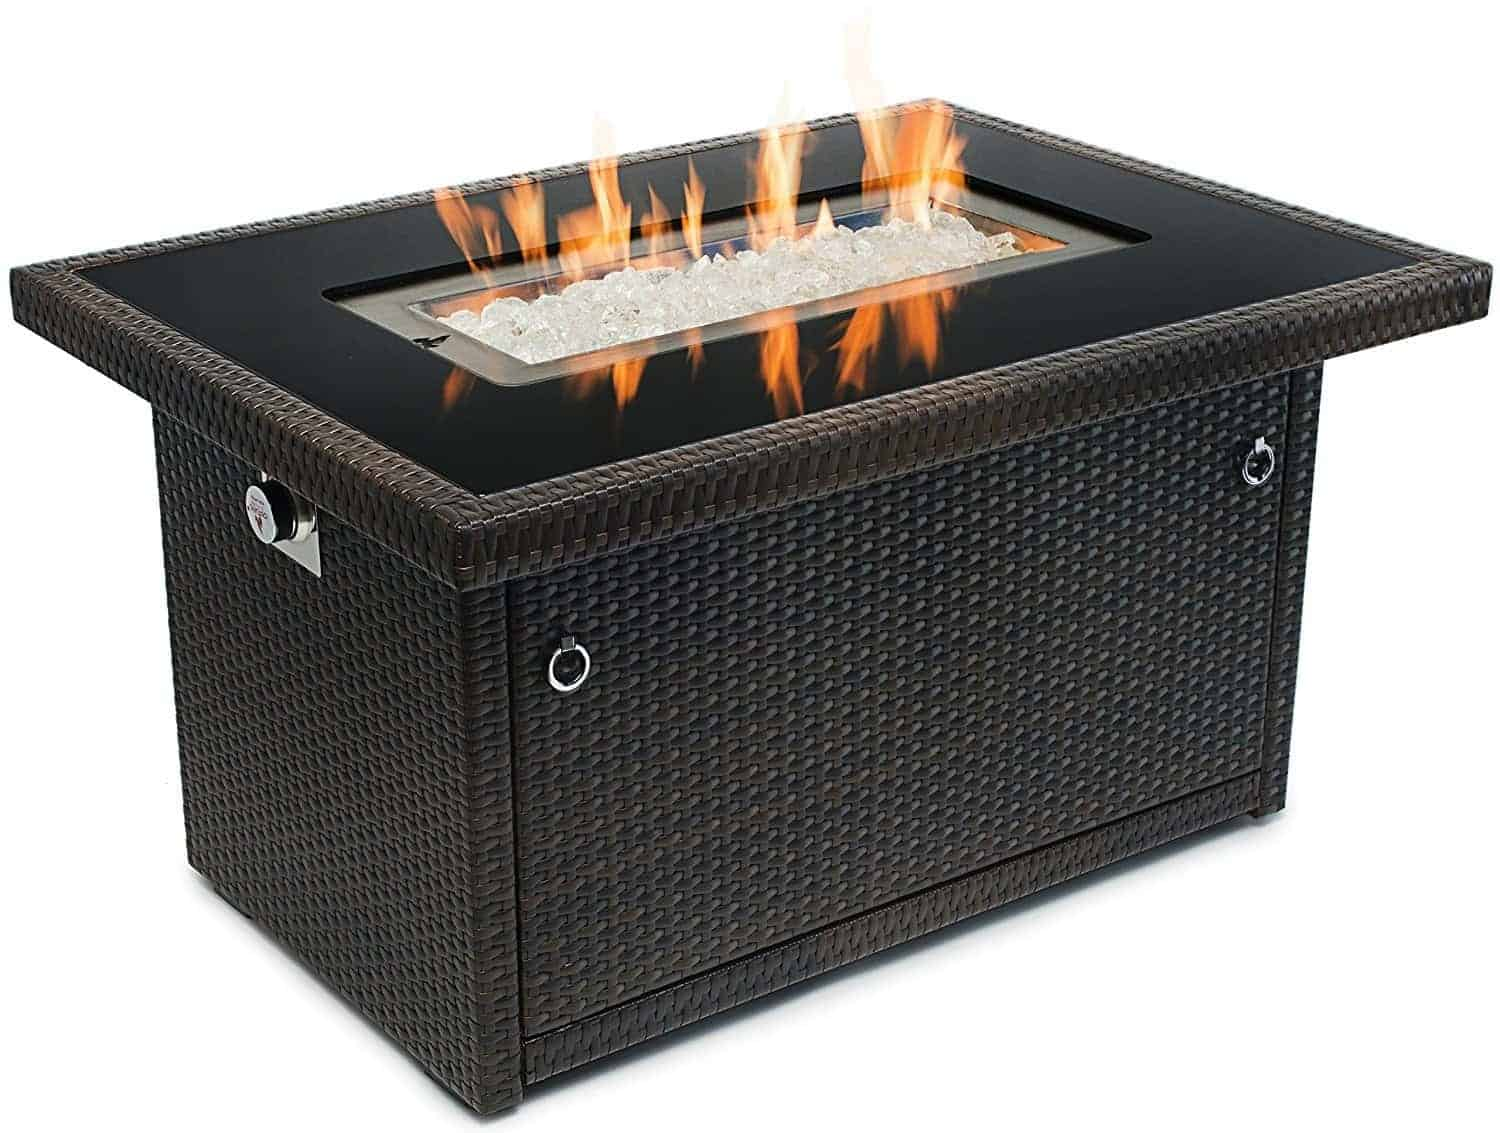 Outland Fire Table, Aluminum Frame Propane Fire Pit Table w/Black Tempered Glass Tabletop Resin Wicker Panels